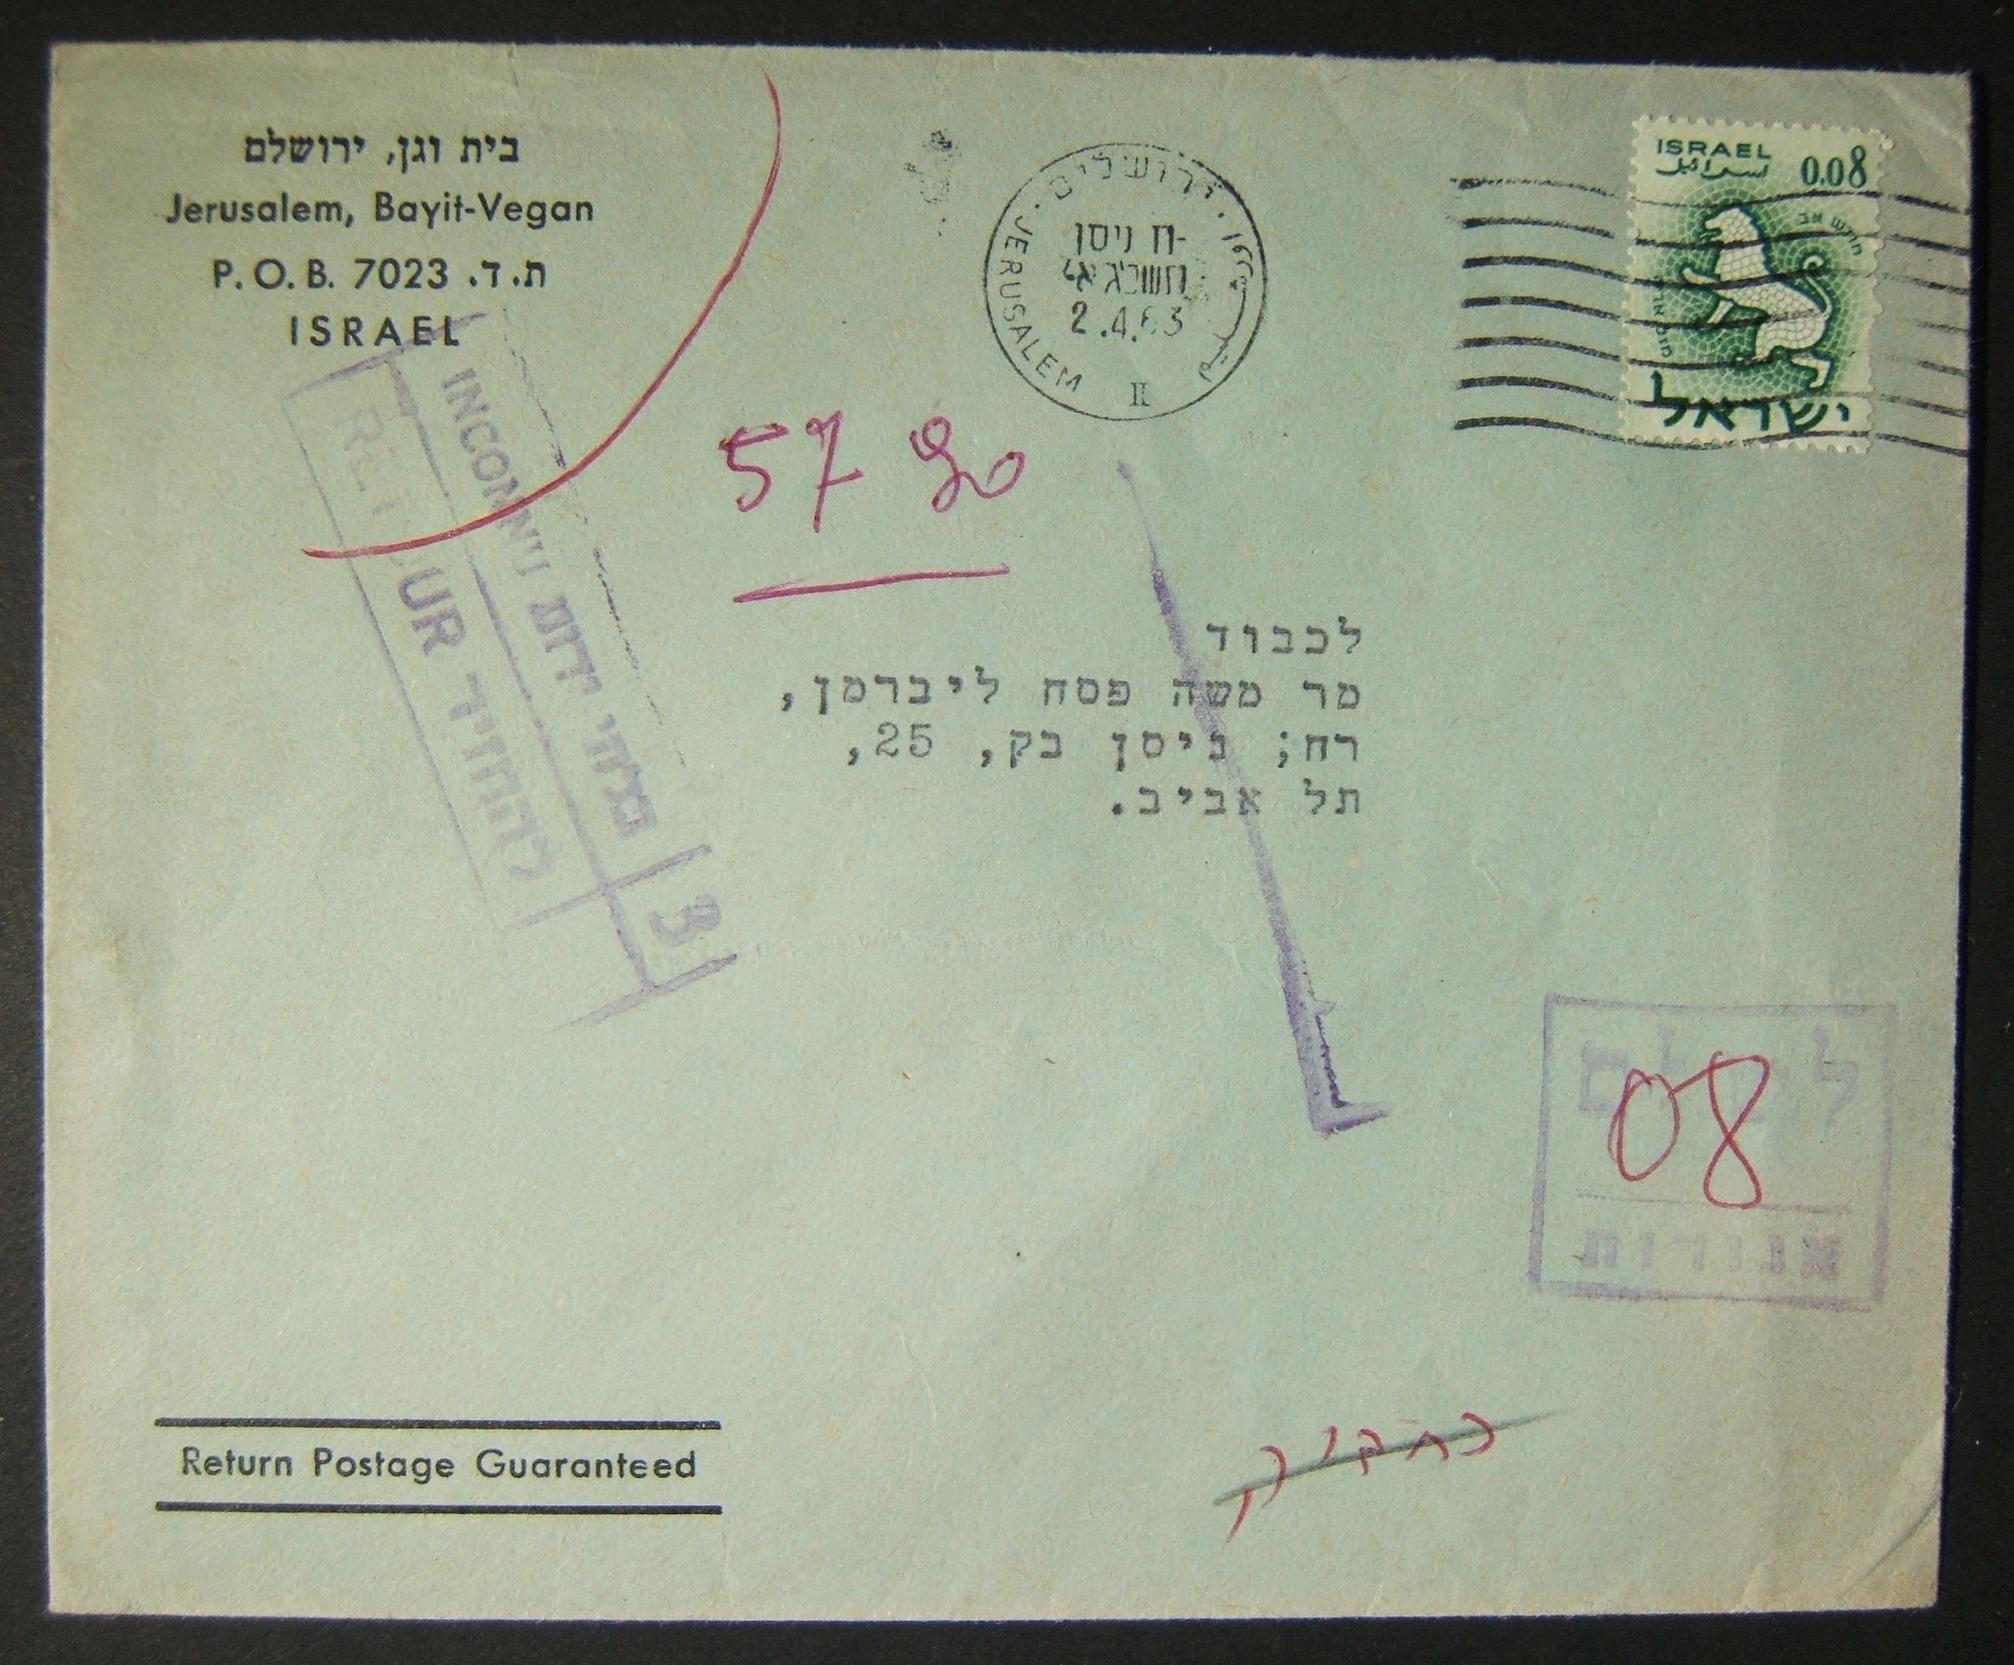 1963 return fee cover: 2-4-1963 commercial printed matter stationary cover ex JERUSALEM to TLV franked 8Ag at the DO-11 period pm rate using single Zodiac frank (Ba208); address un